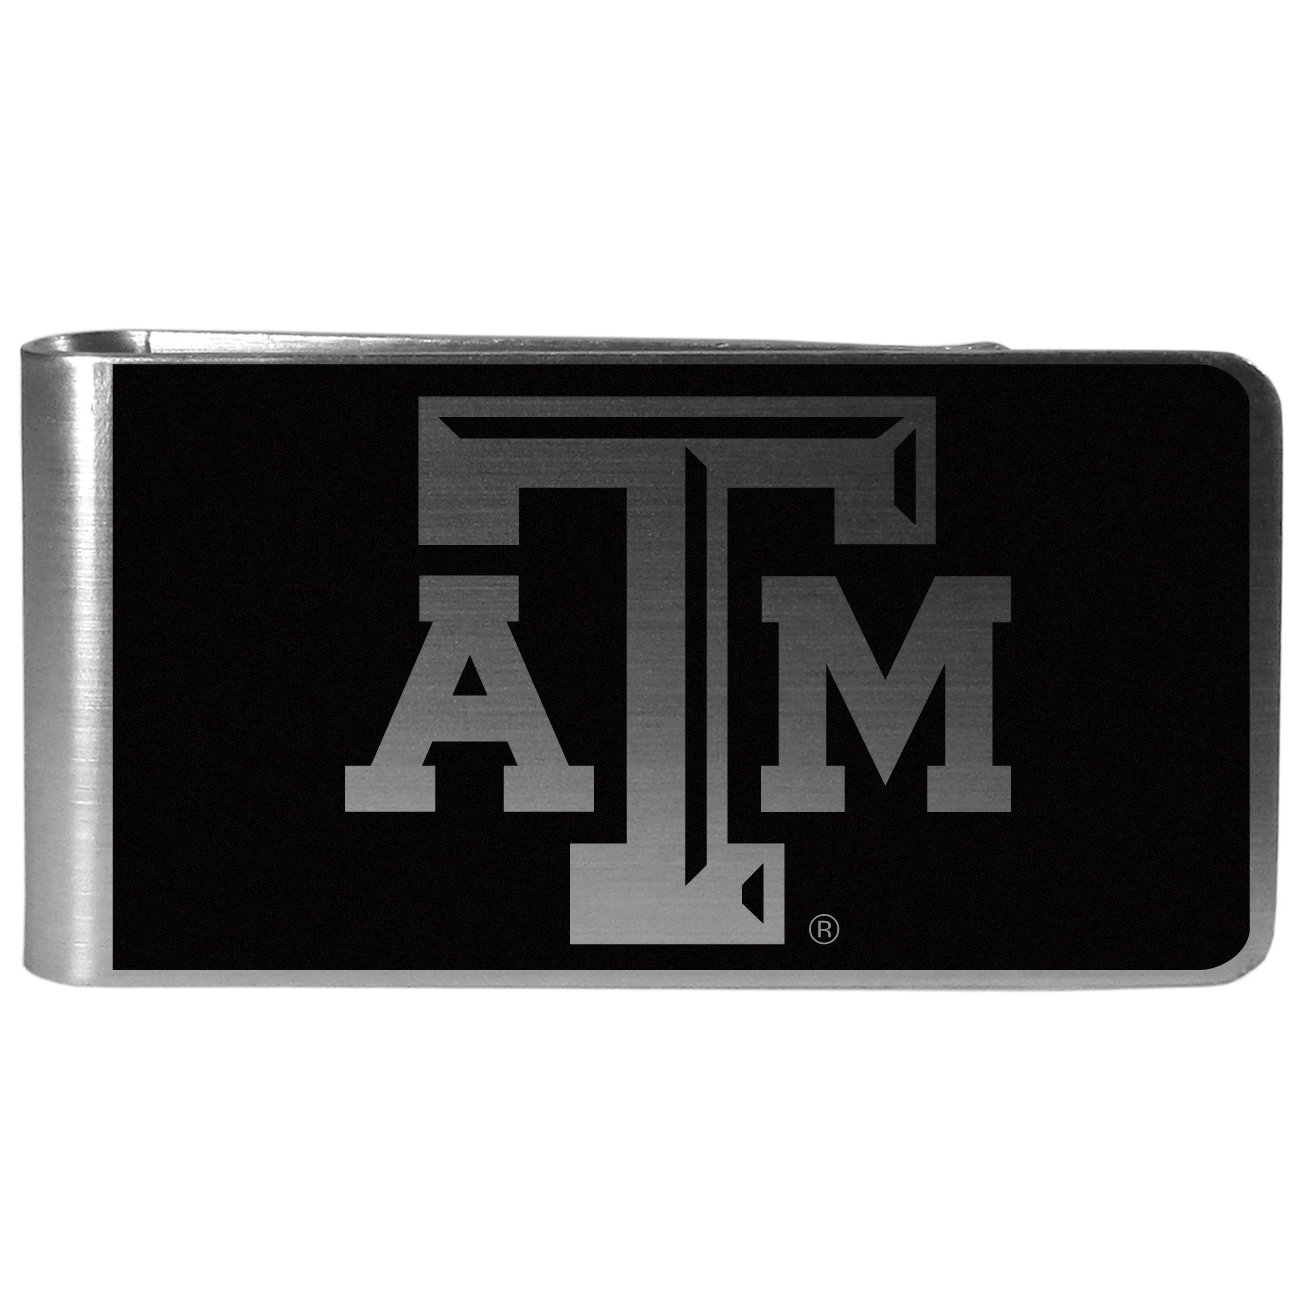 Texas A and M Aggies Black and Steel Money Clip - Our monochromatic steel money clips have a classic style and superior quality. The strong, steel clip has a black overlay of the Texas A & M Aggies logo over the brushed metal finish creating a stylish men's fashion accessory that would make any fan proud.